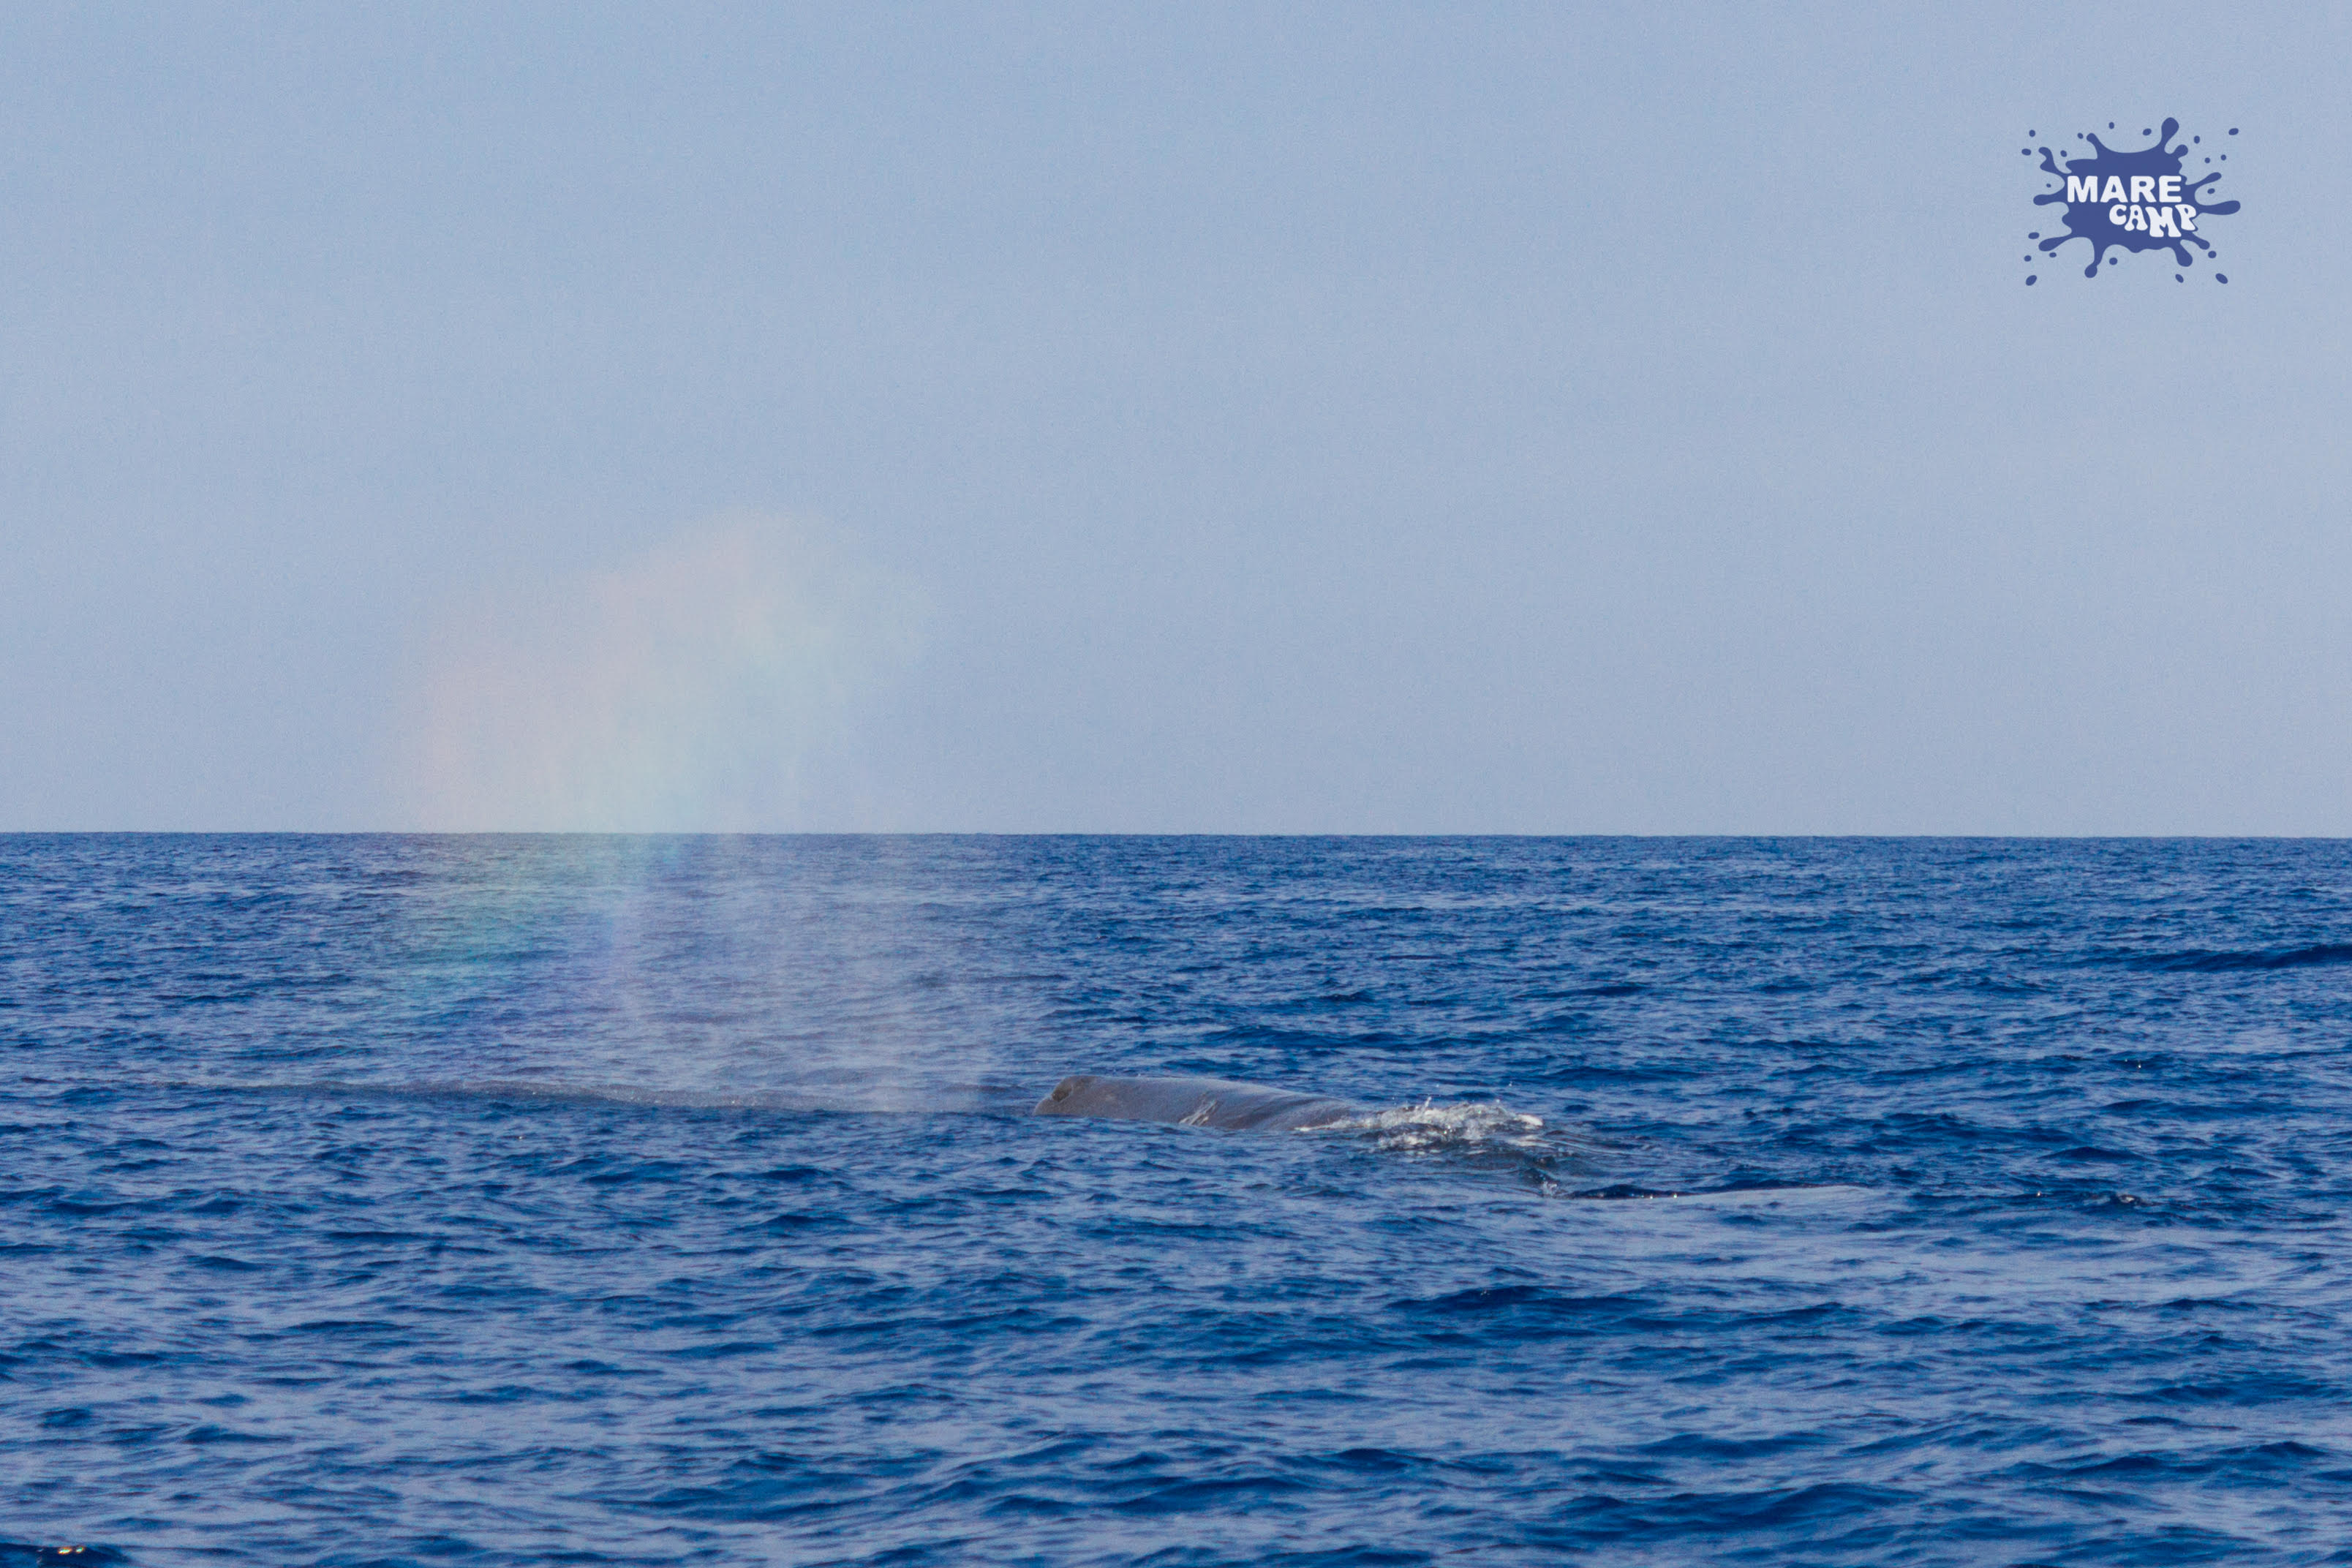 Capodoglio Marecamp whale watching 3